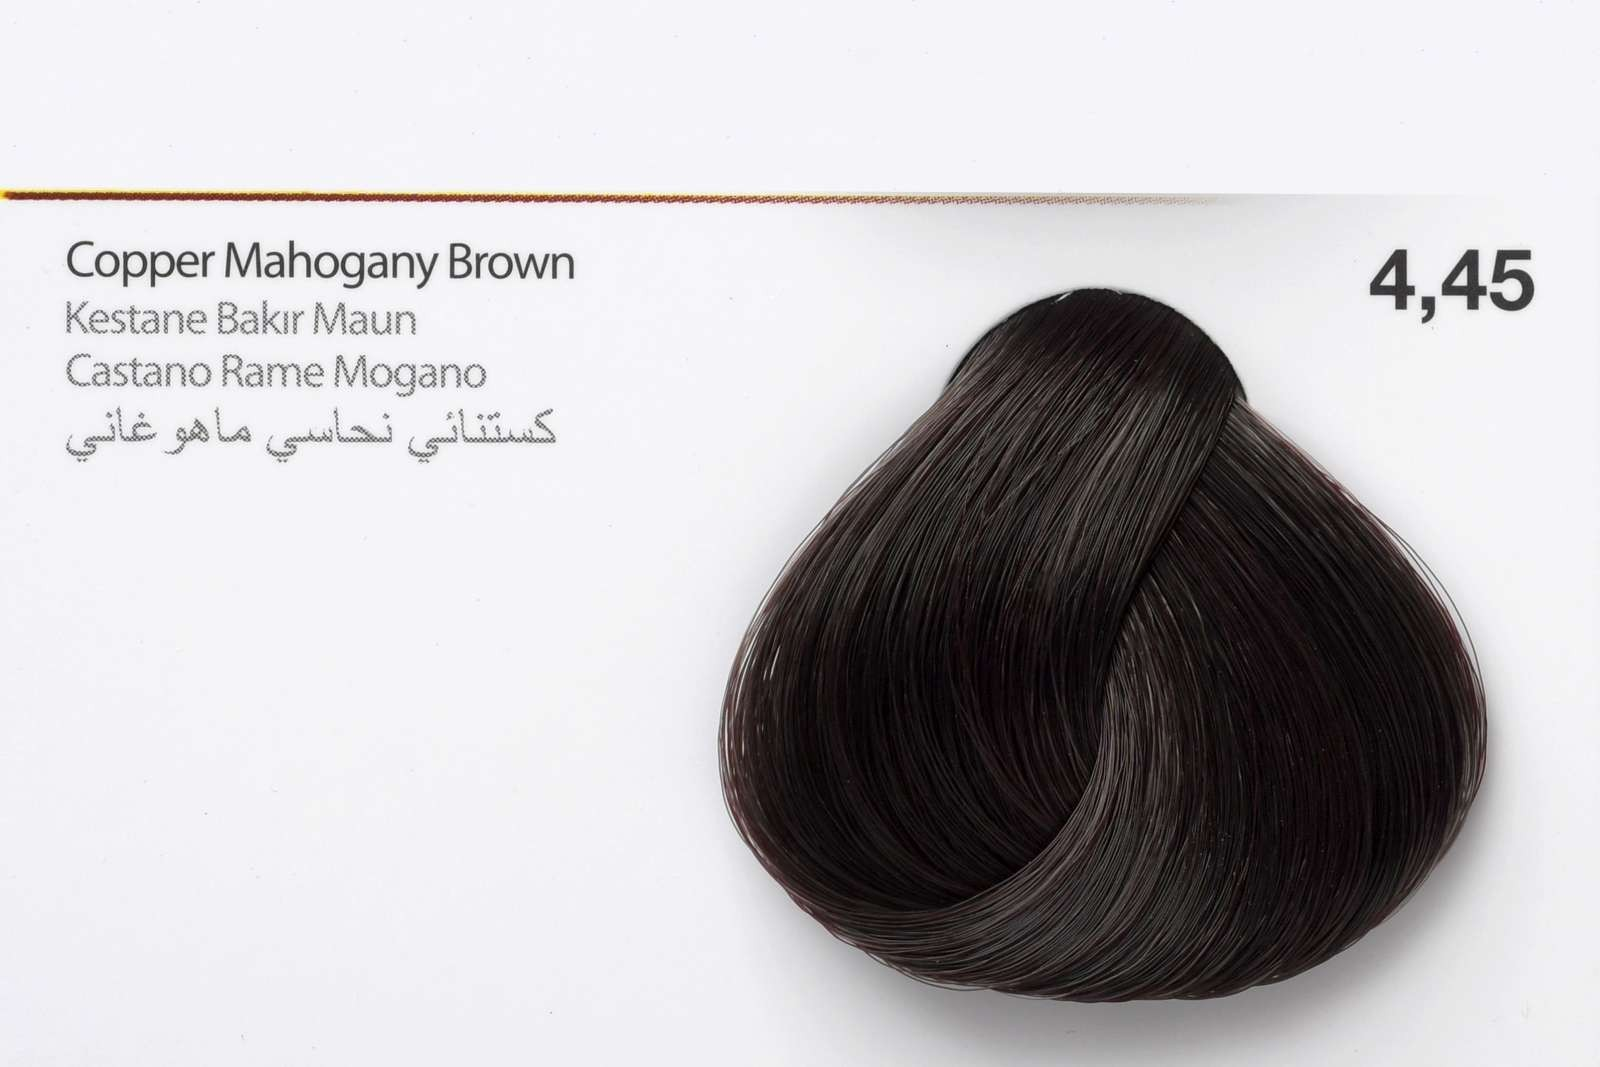 4,45 - Copper Mahogany Brown-swatch